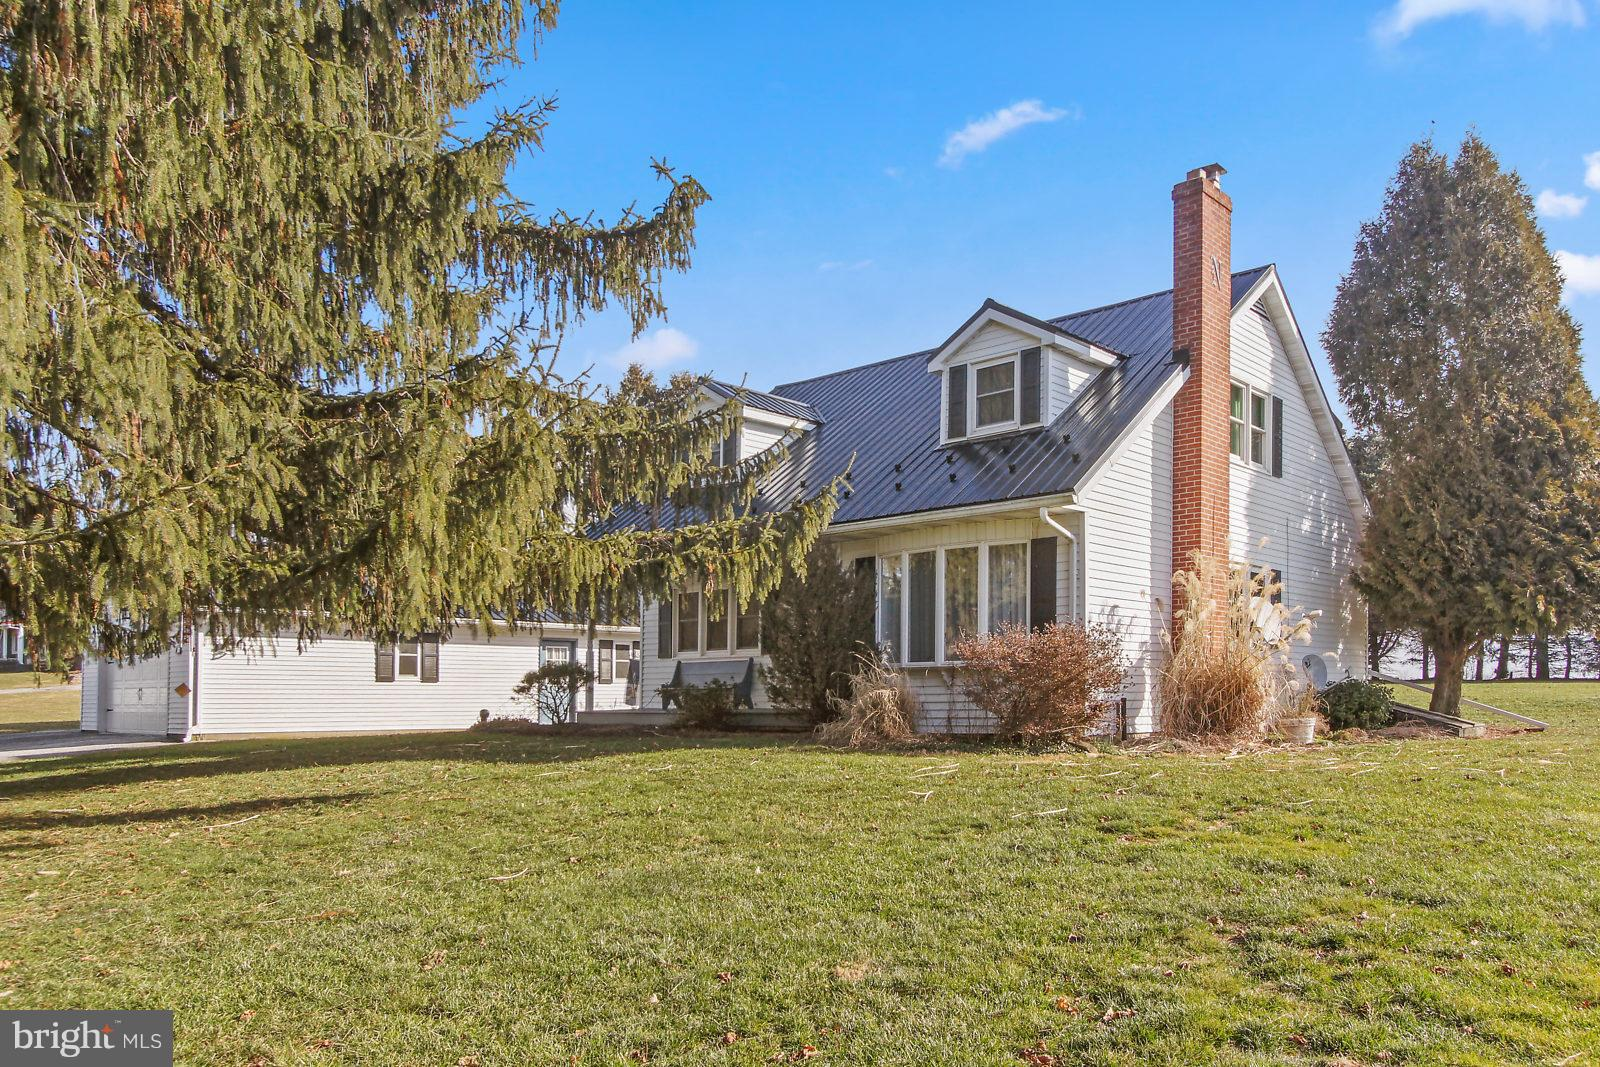 21 NEW PARK ROAD, NEW PARK, PA 17352